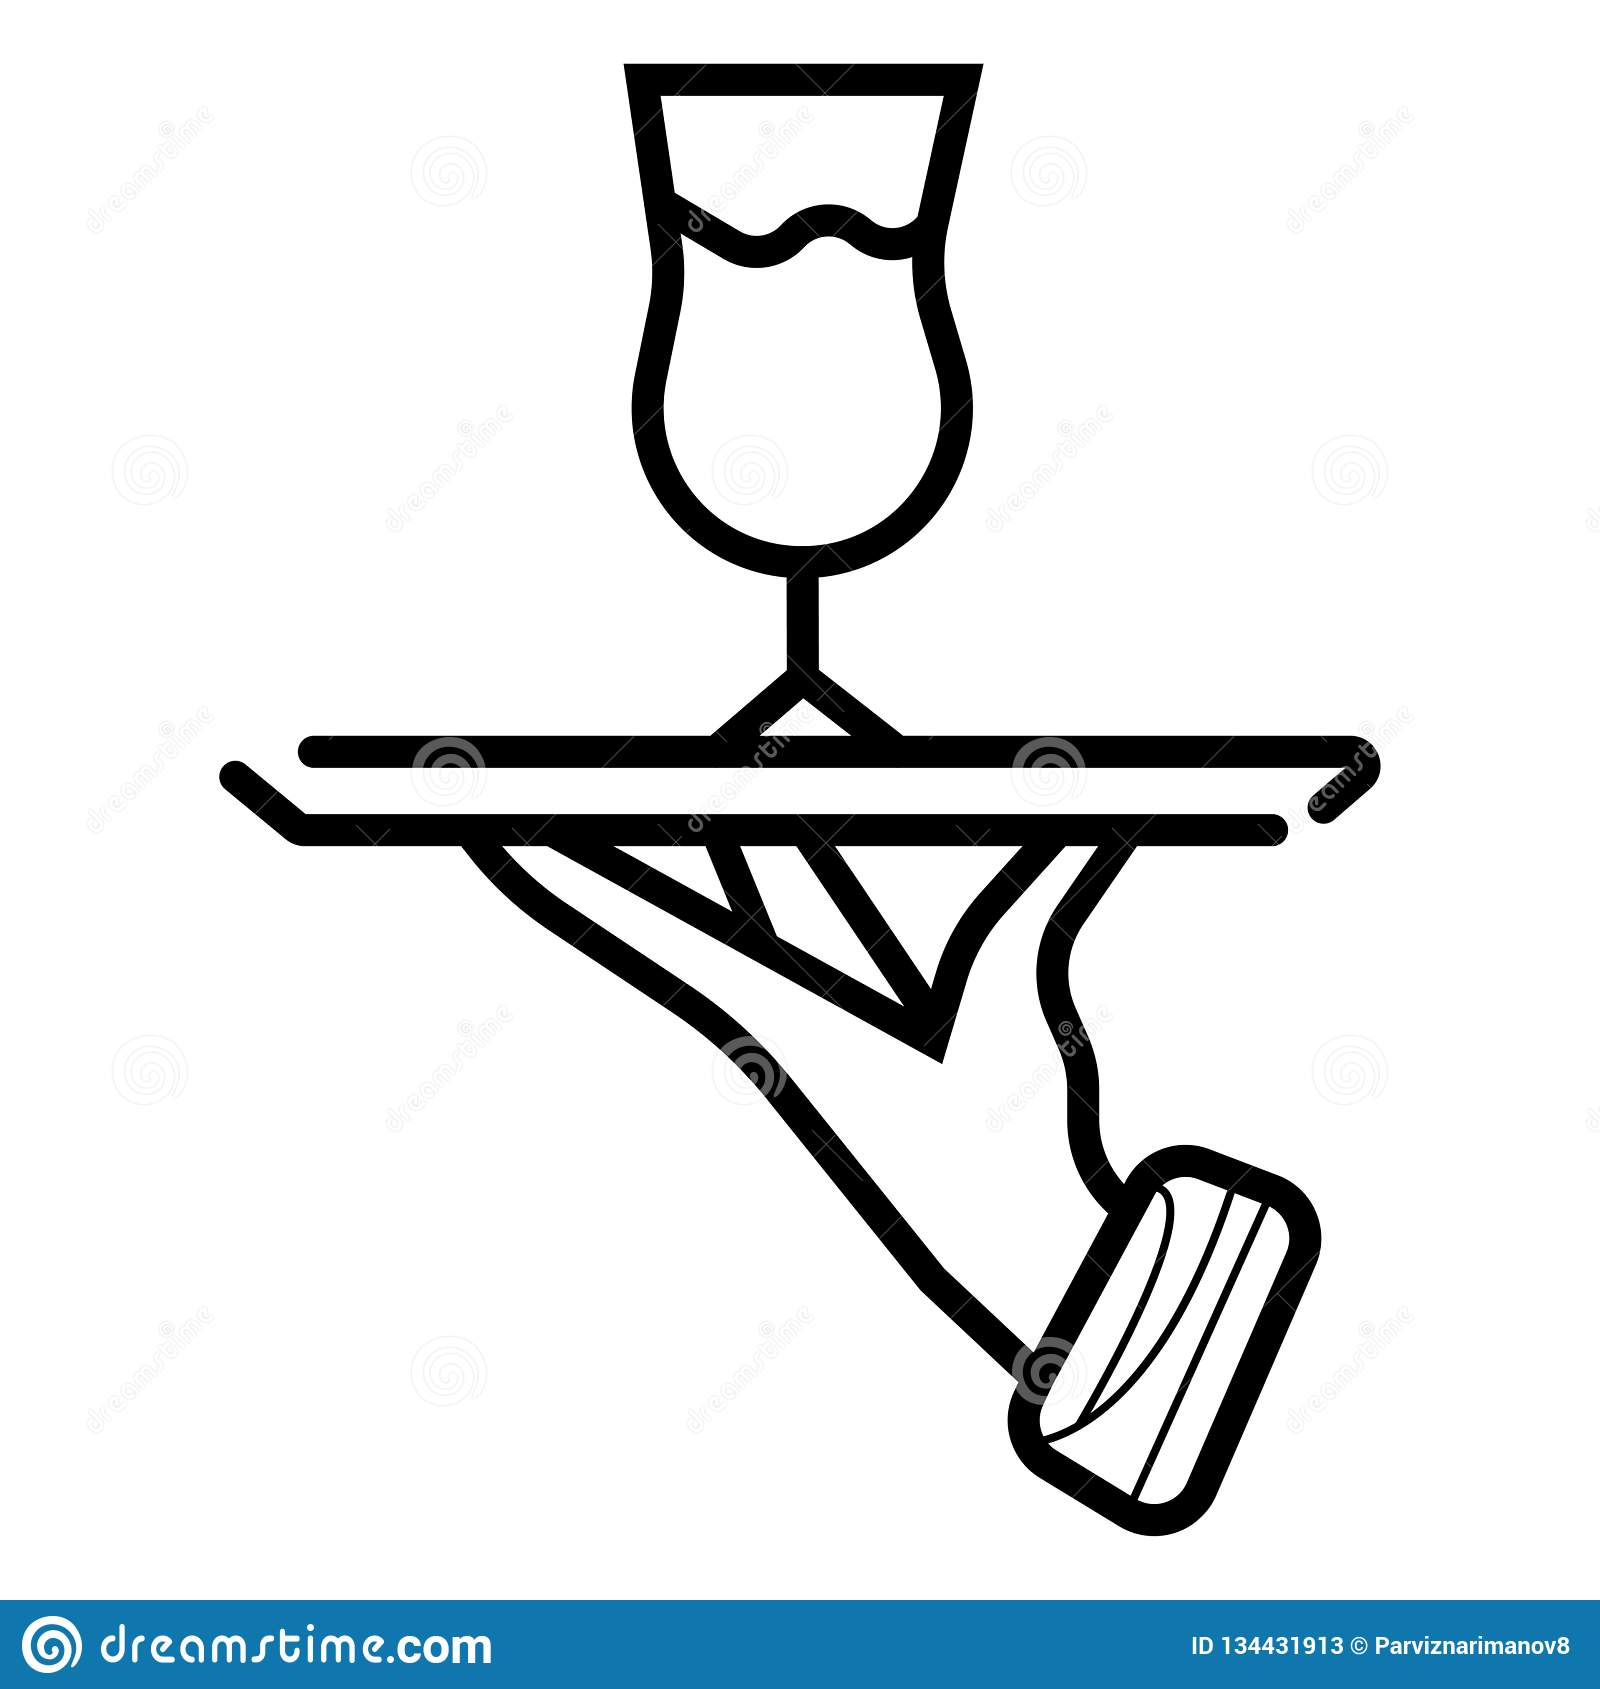 Serving drink icon